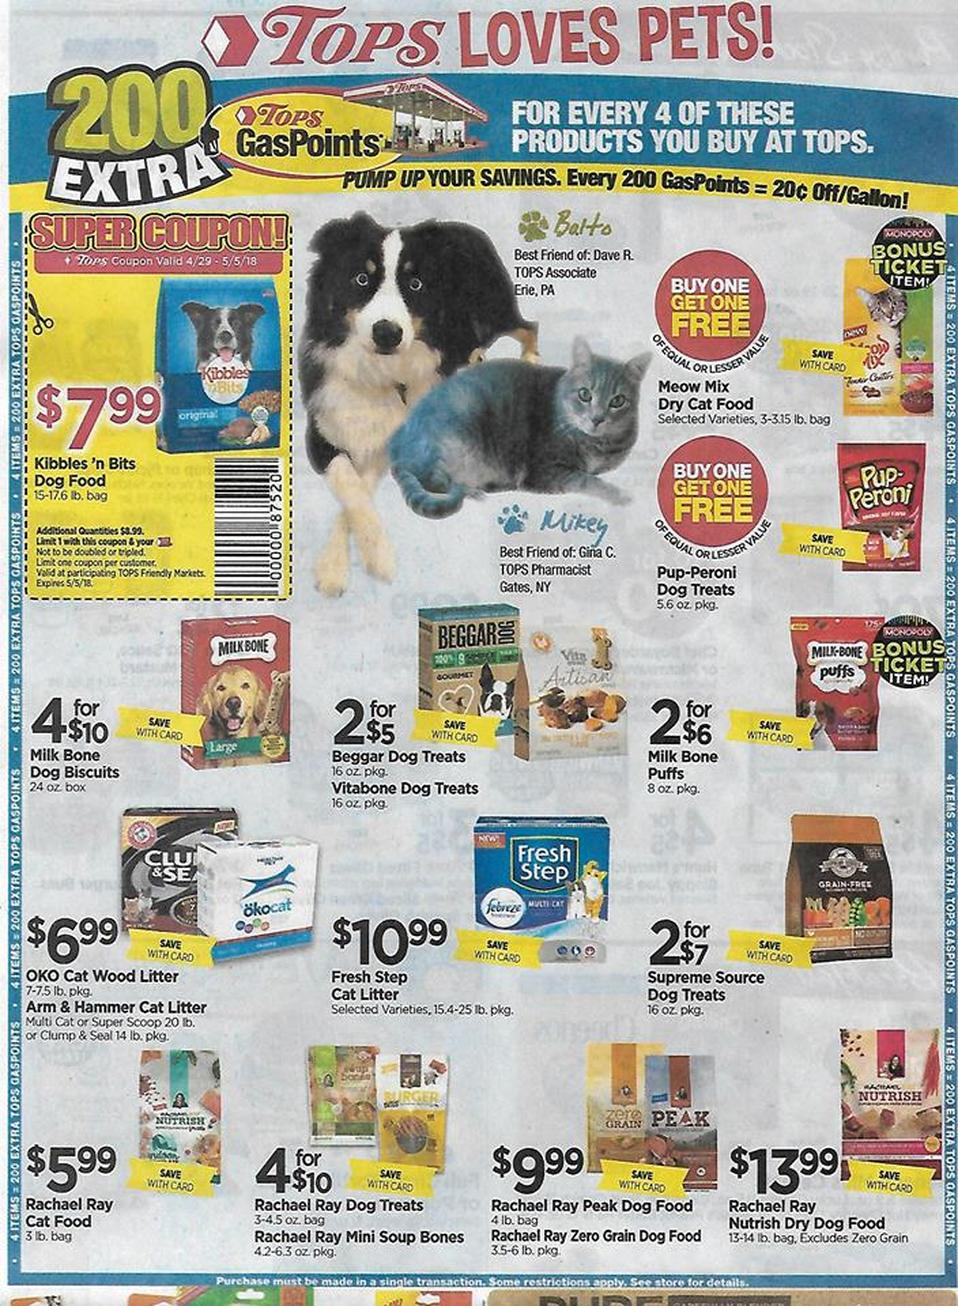 image relating to On the Border Printable Coupons identified as Of course!!! A further Gasoline BOX ADDITION!!! Tops Consumers Fresh